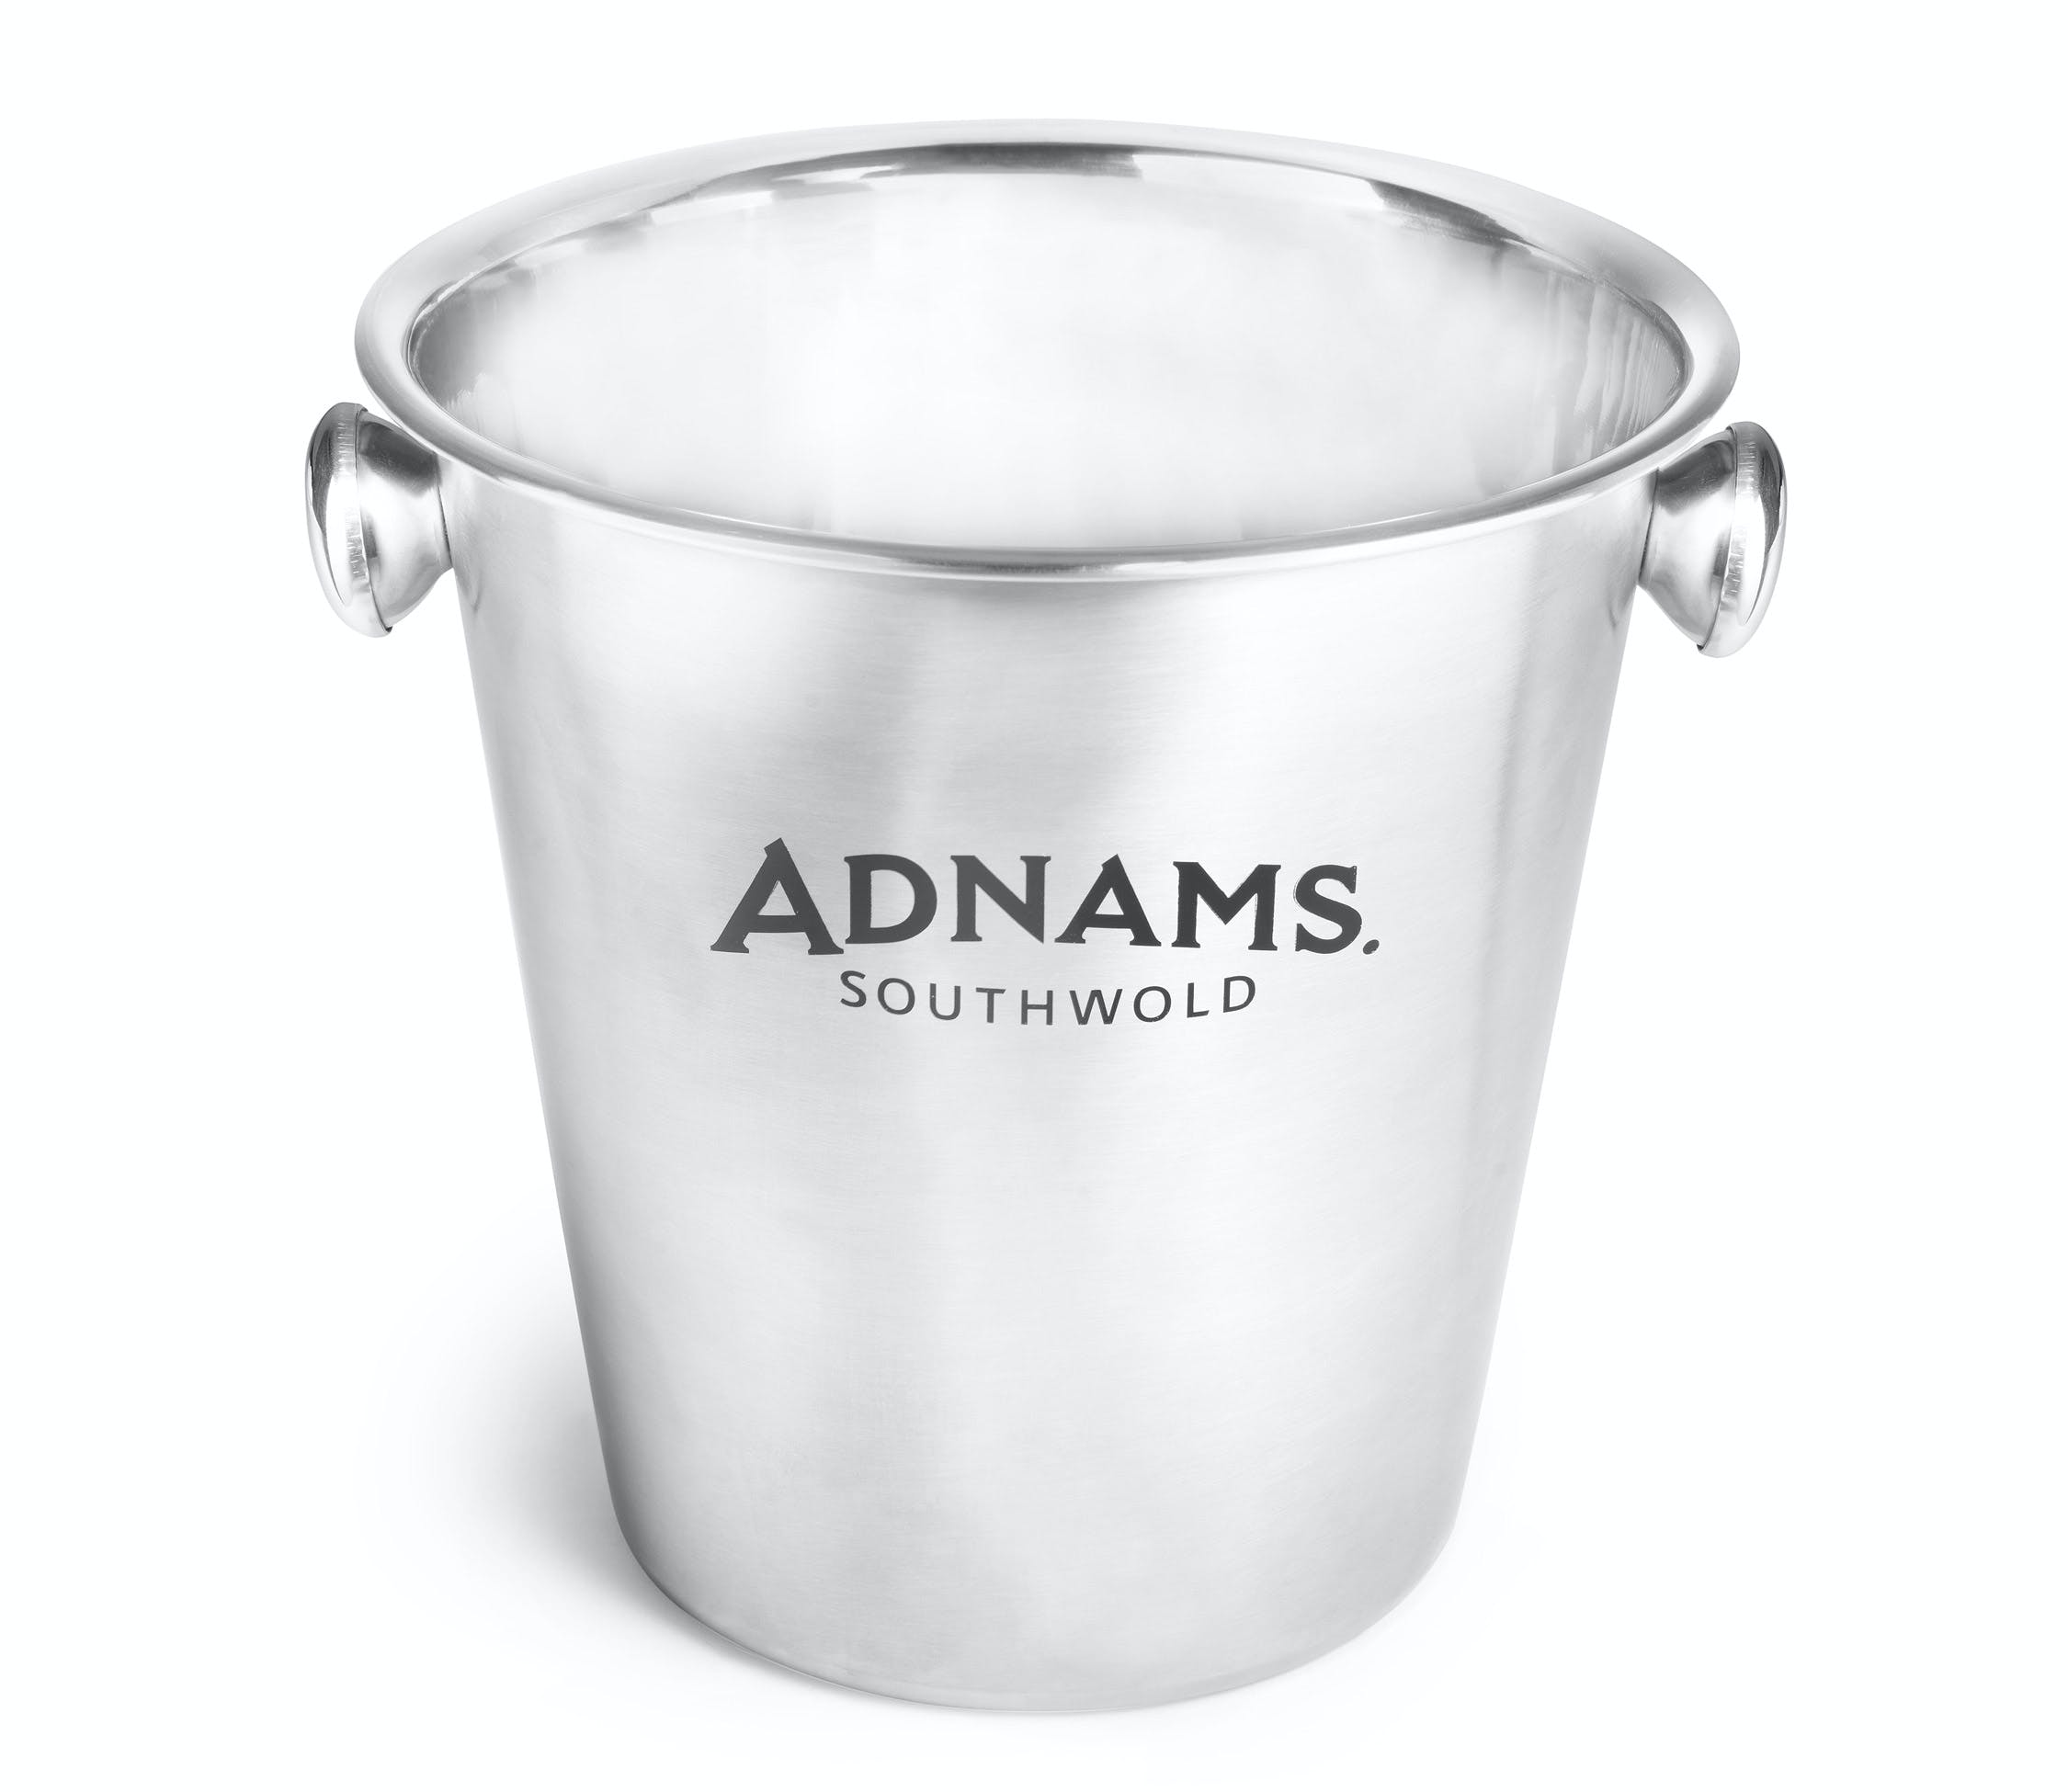 Stockists of Adnams BBQ Giftpack